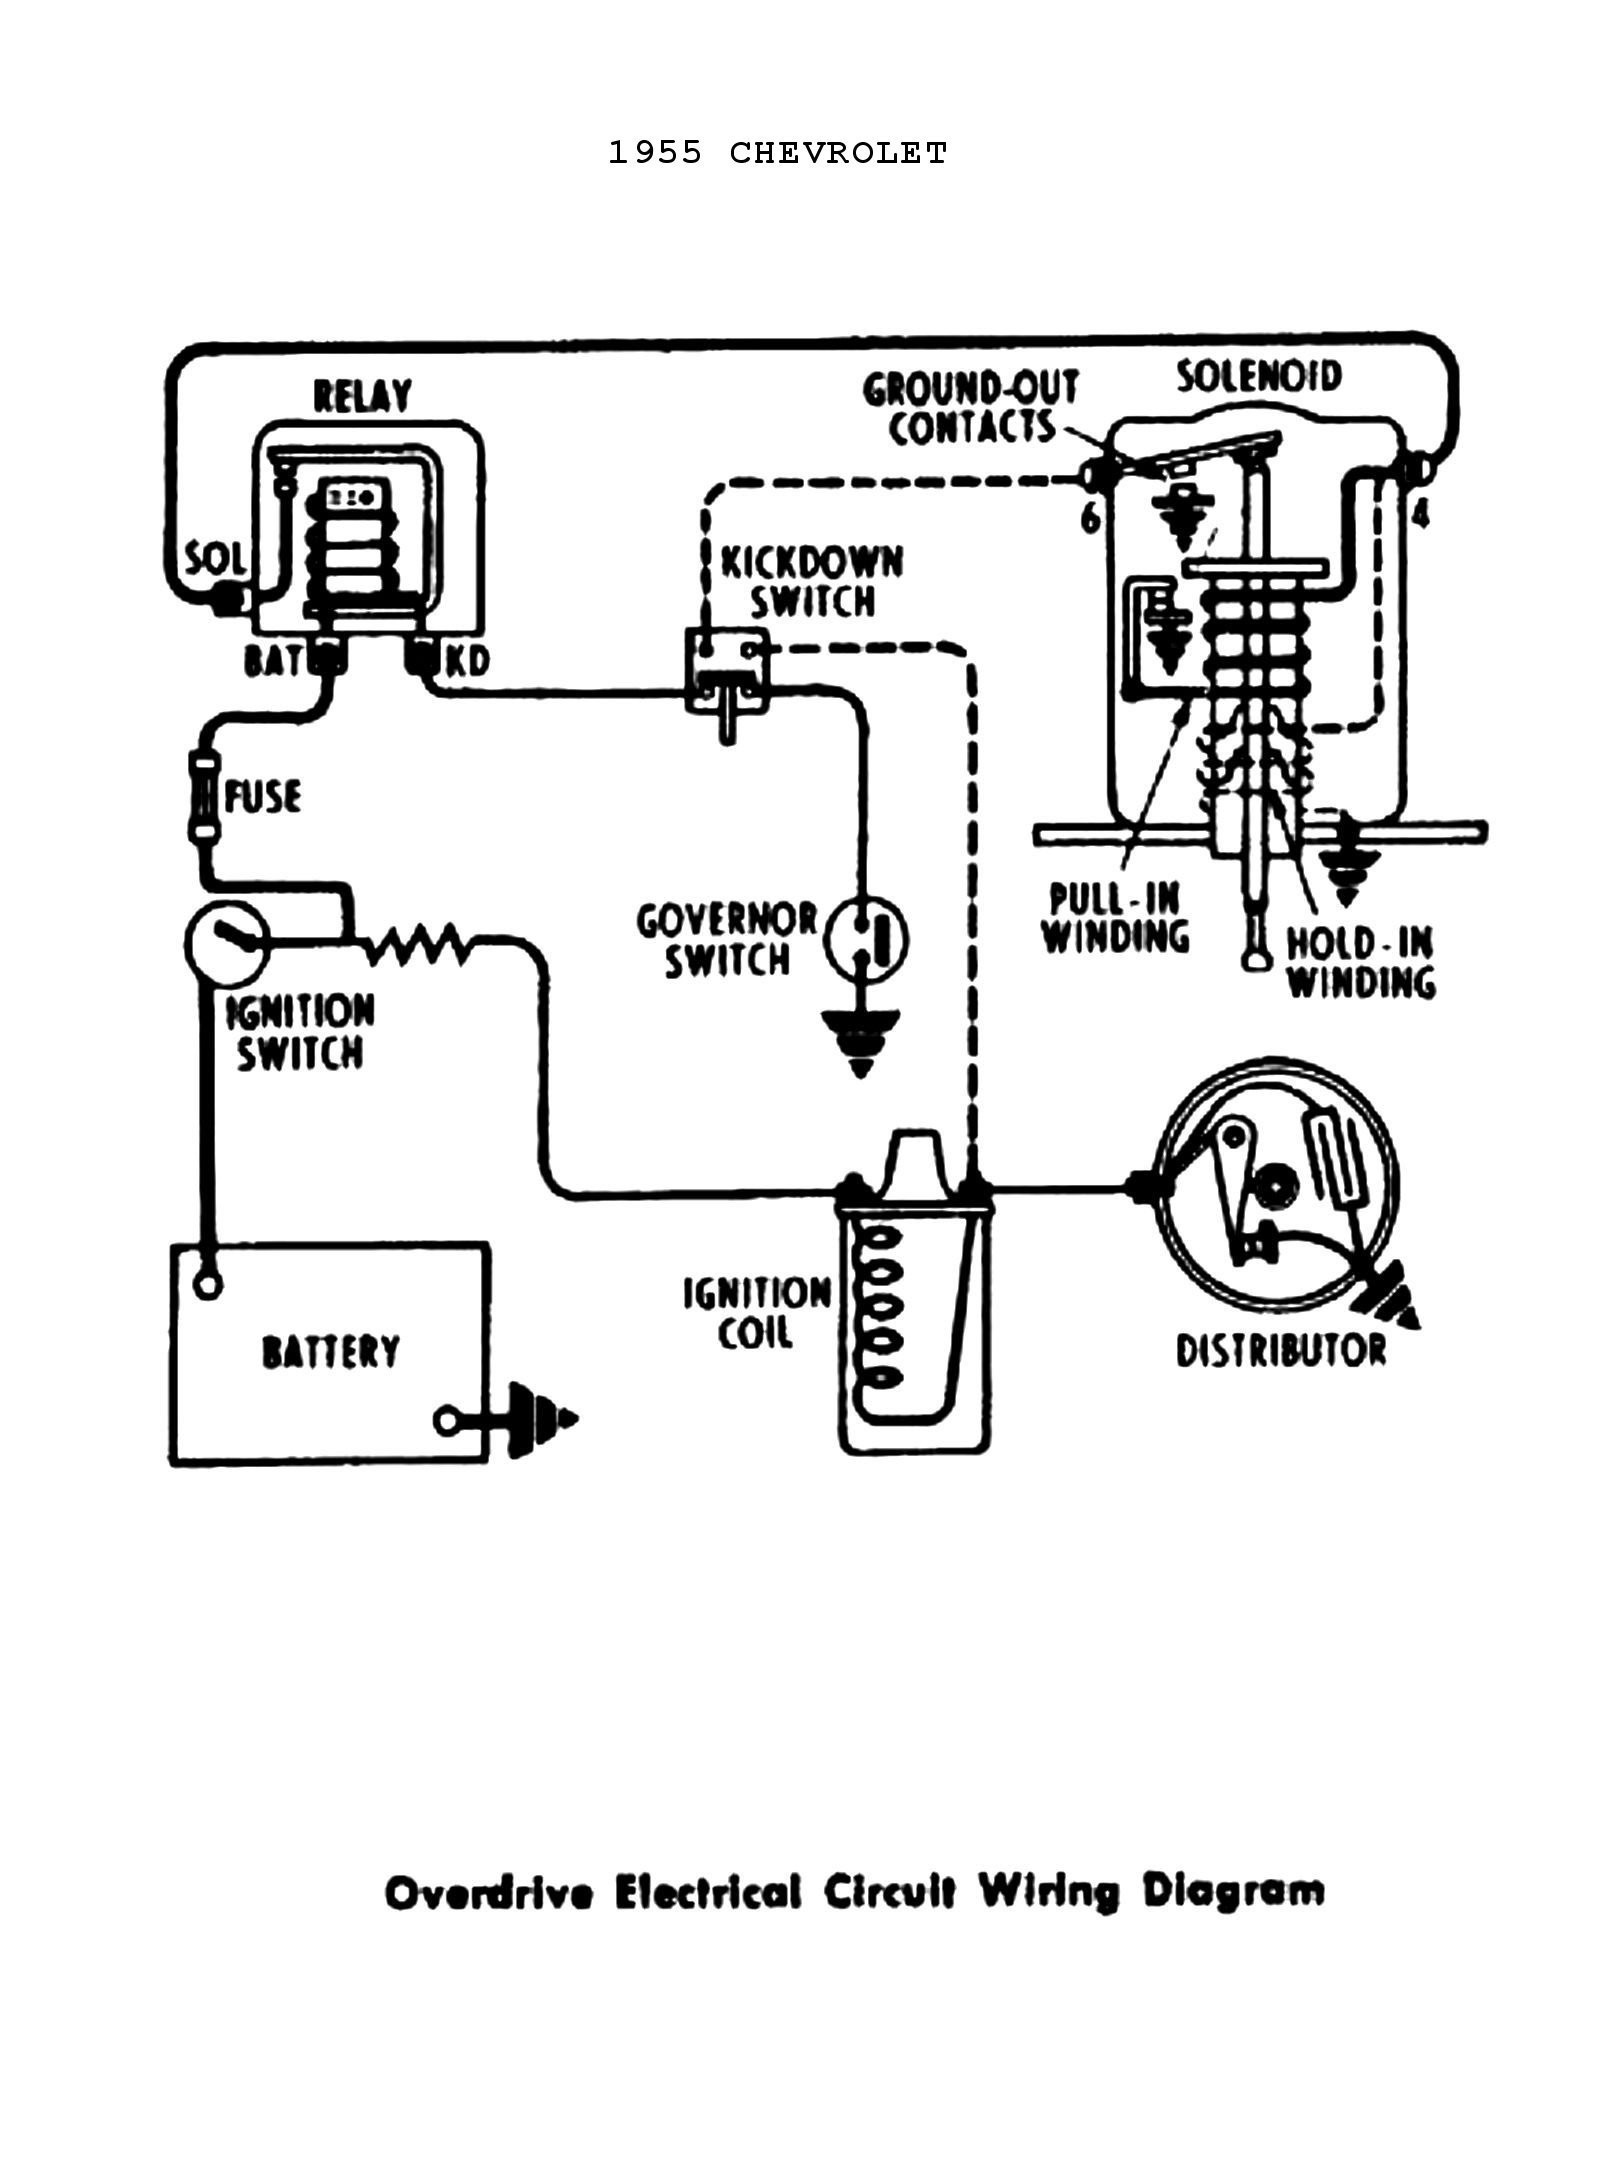 Coil Ignition System Diagram Wiring Diagram the Ignition System Valid Ignition Switch Wiring Of Coil Ignition System Diagram E36 Ignition Switch Wiring Diagram Best Wiring Diagram for Ignition